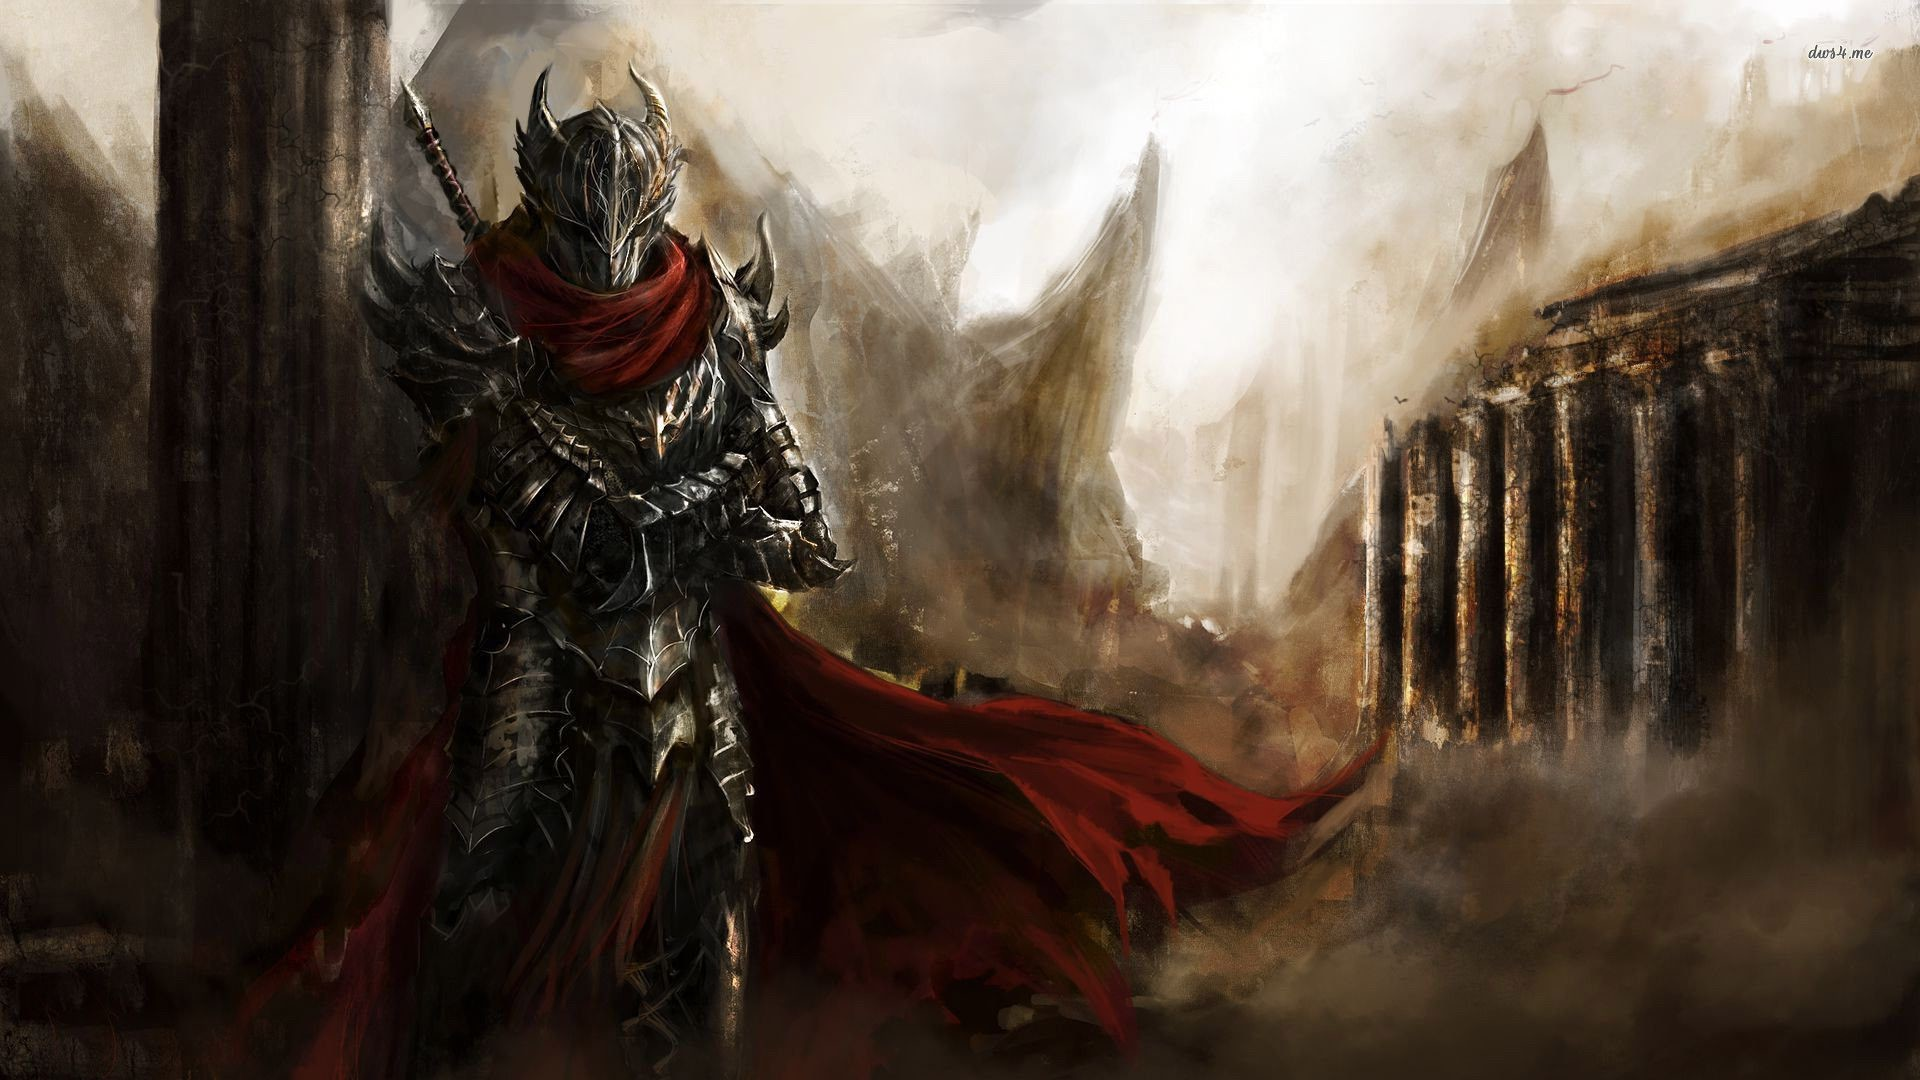 Medieval Black Knight Wallpapers Wide On Wallpaper Hd 1920 x 1080 px 623.08  KB crusader medieval